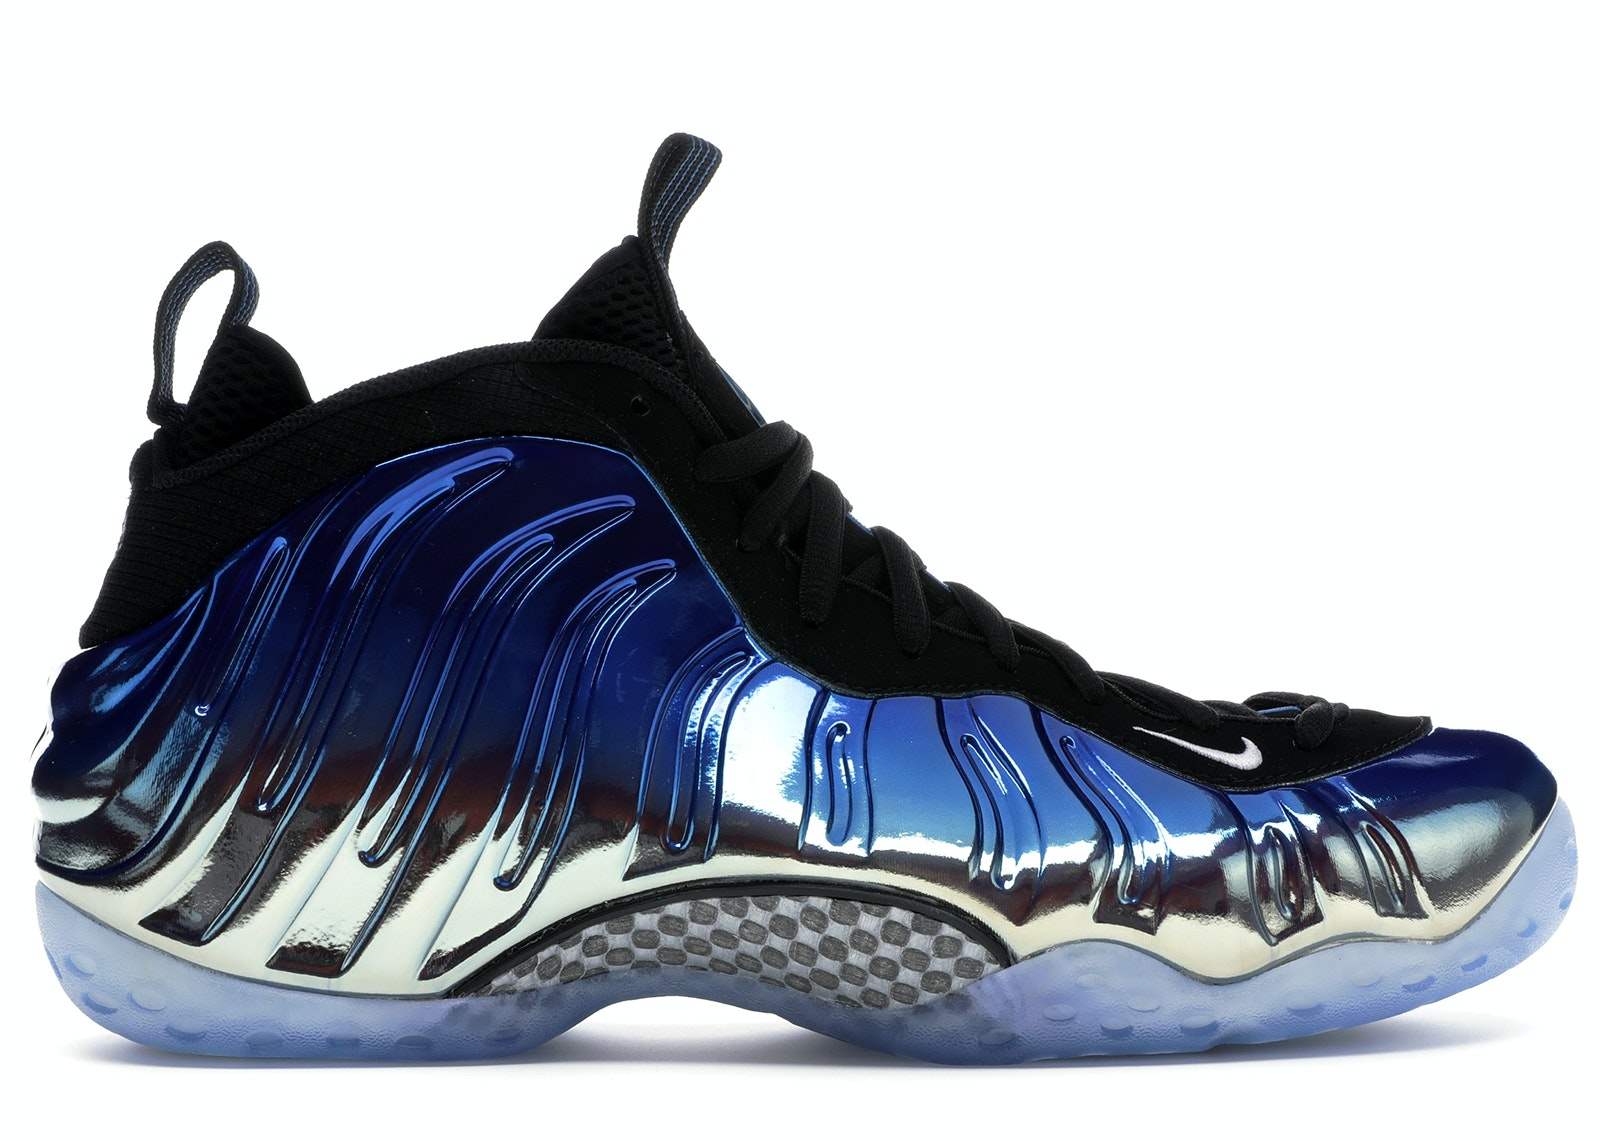 Nike Air Foamposite One Fighter Jet will break new ground ...